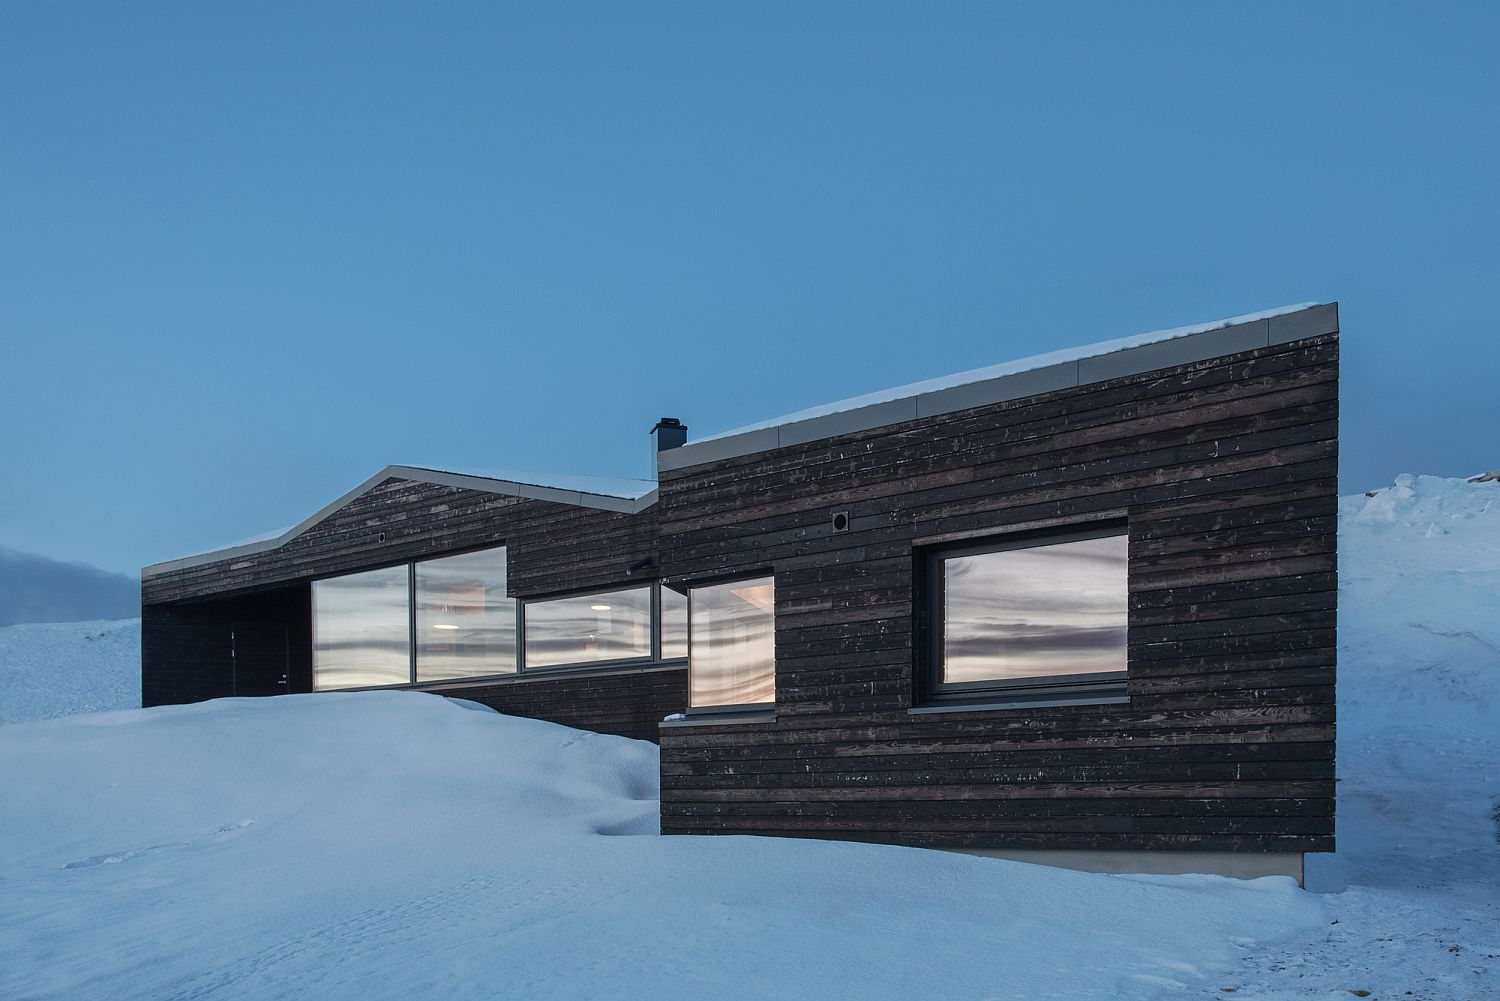 Minimal and striking exterior of the Norwegian cabin on snowy slopes